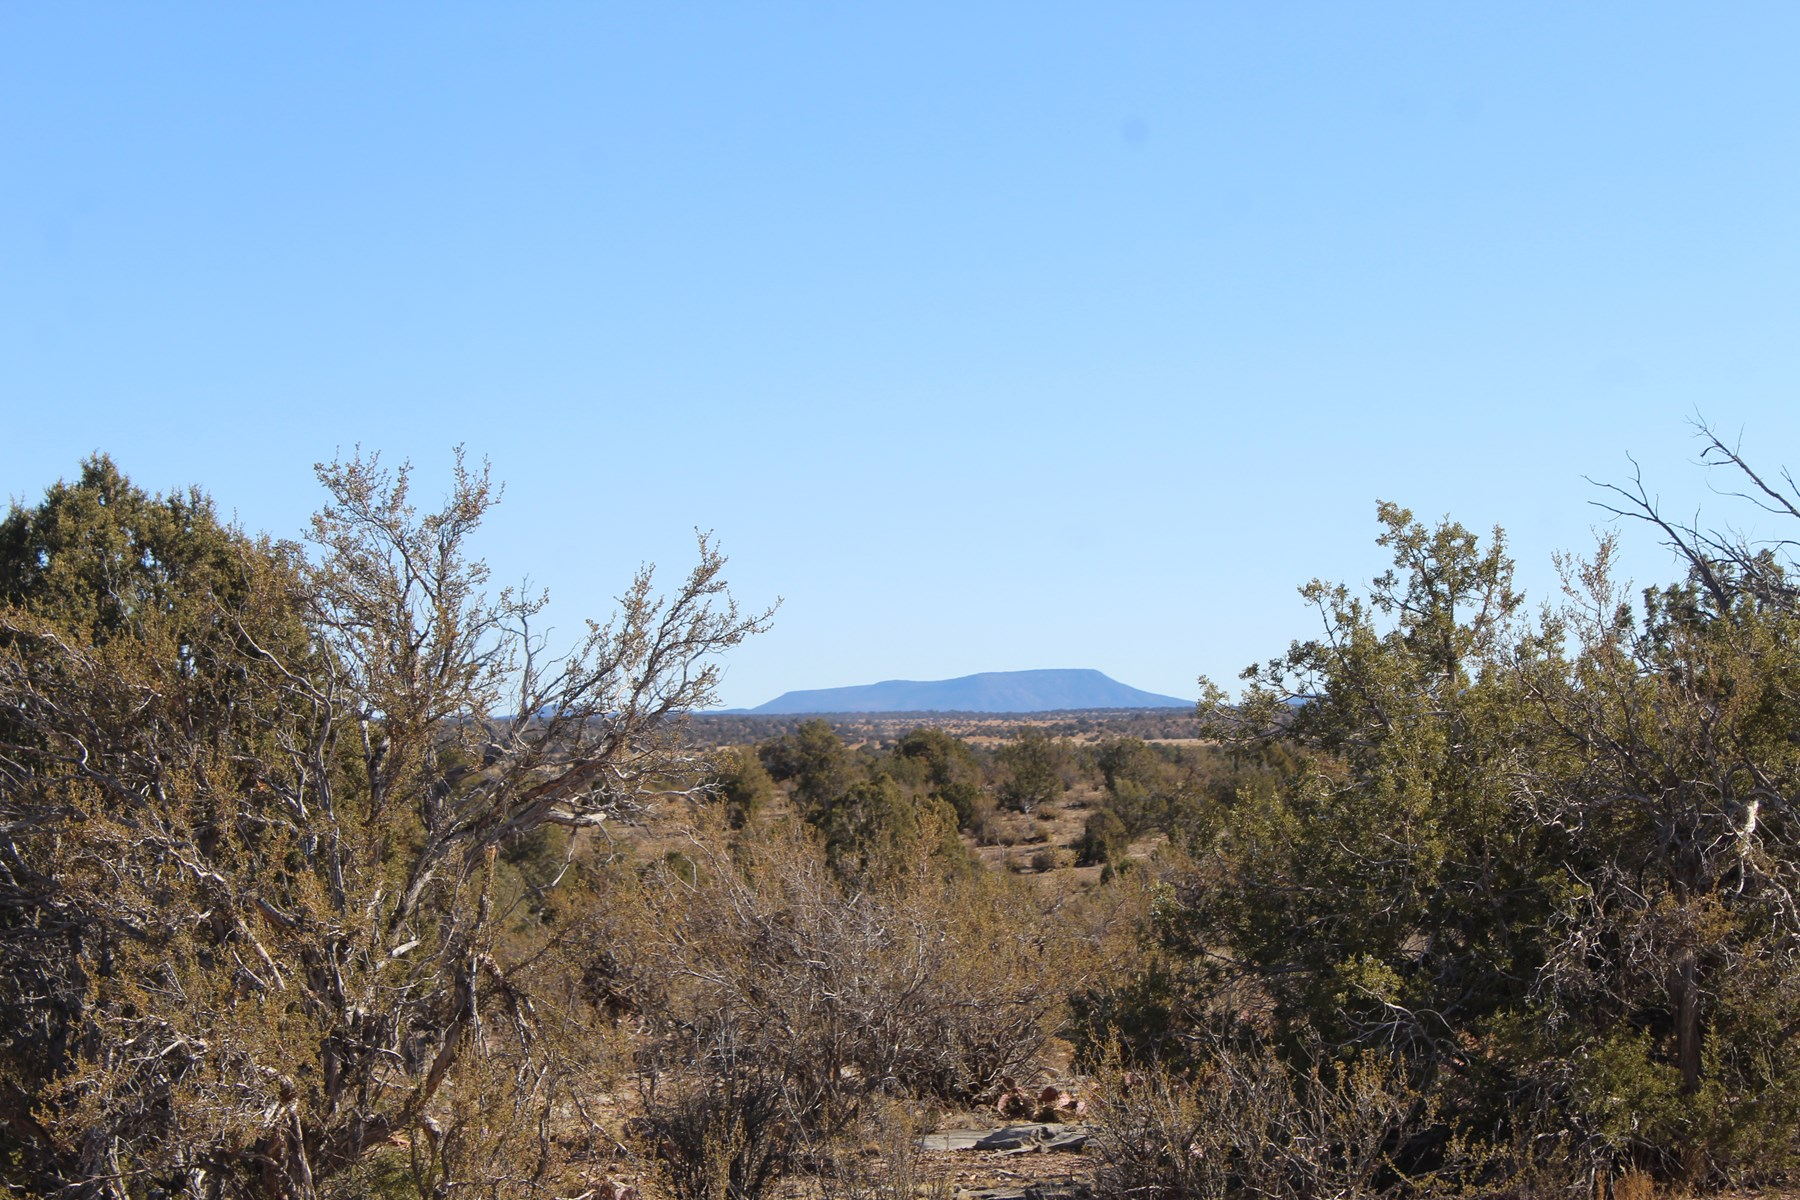 Rural Private Recreational Land for Sale Northern AZ